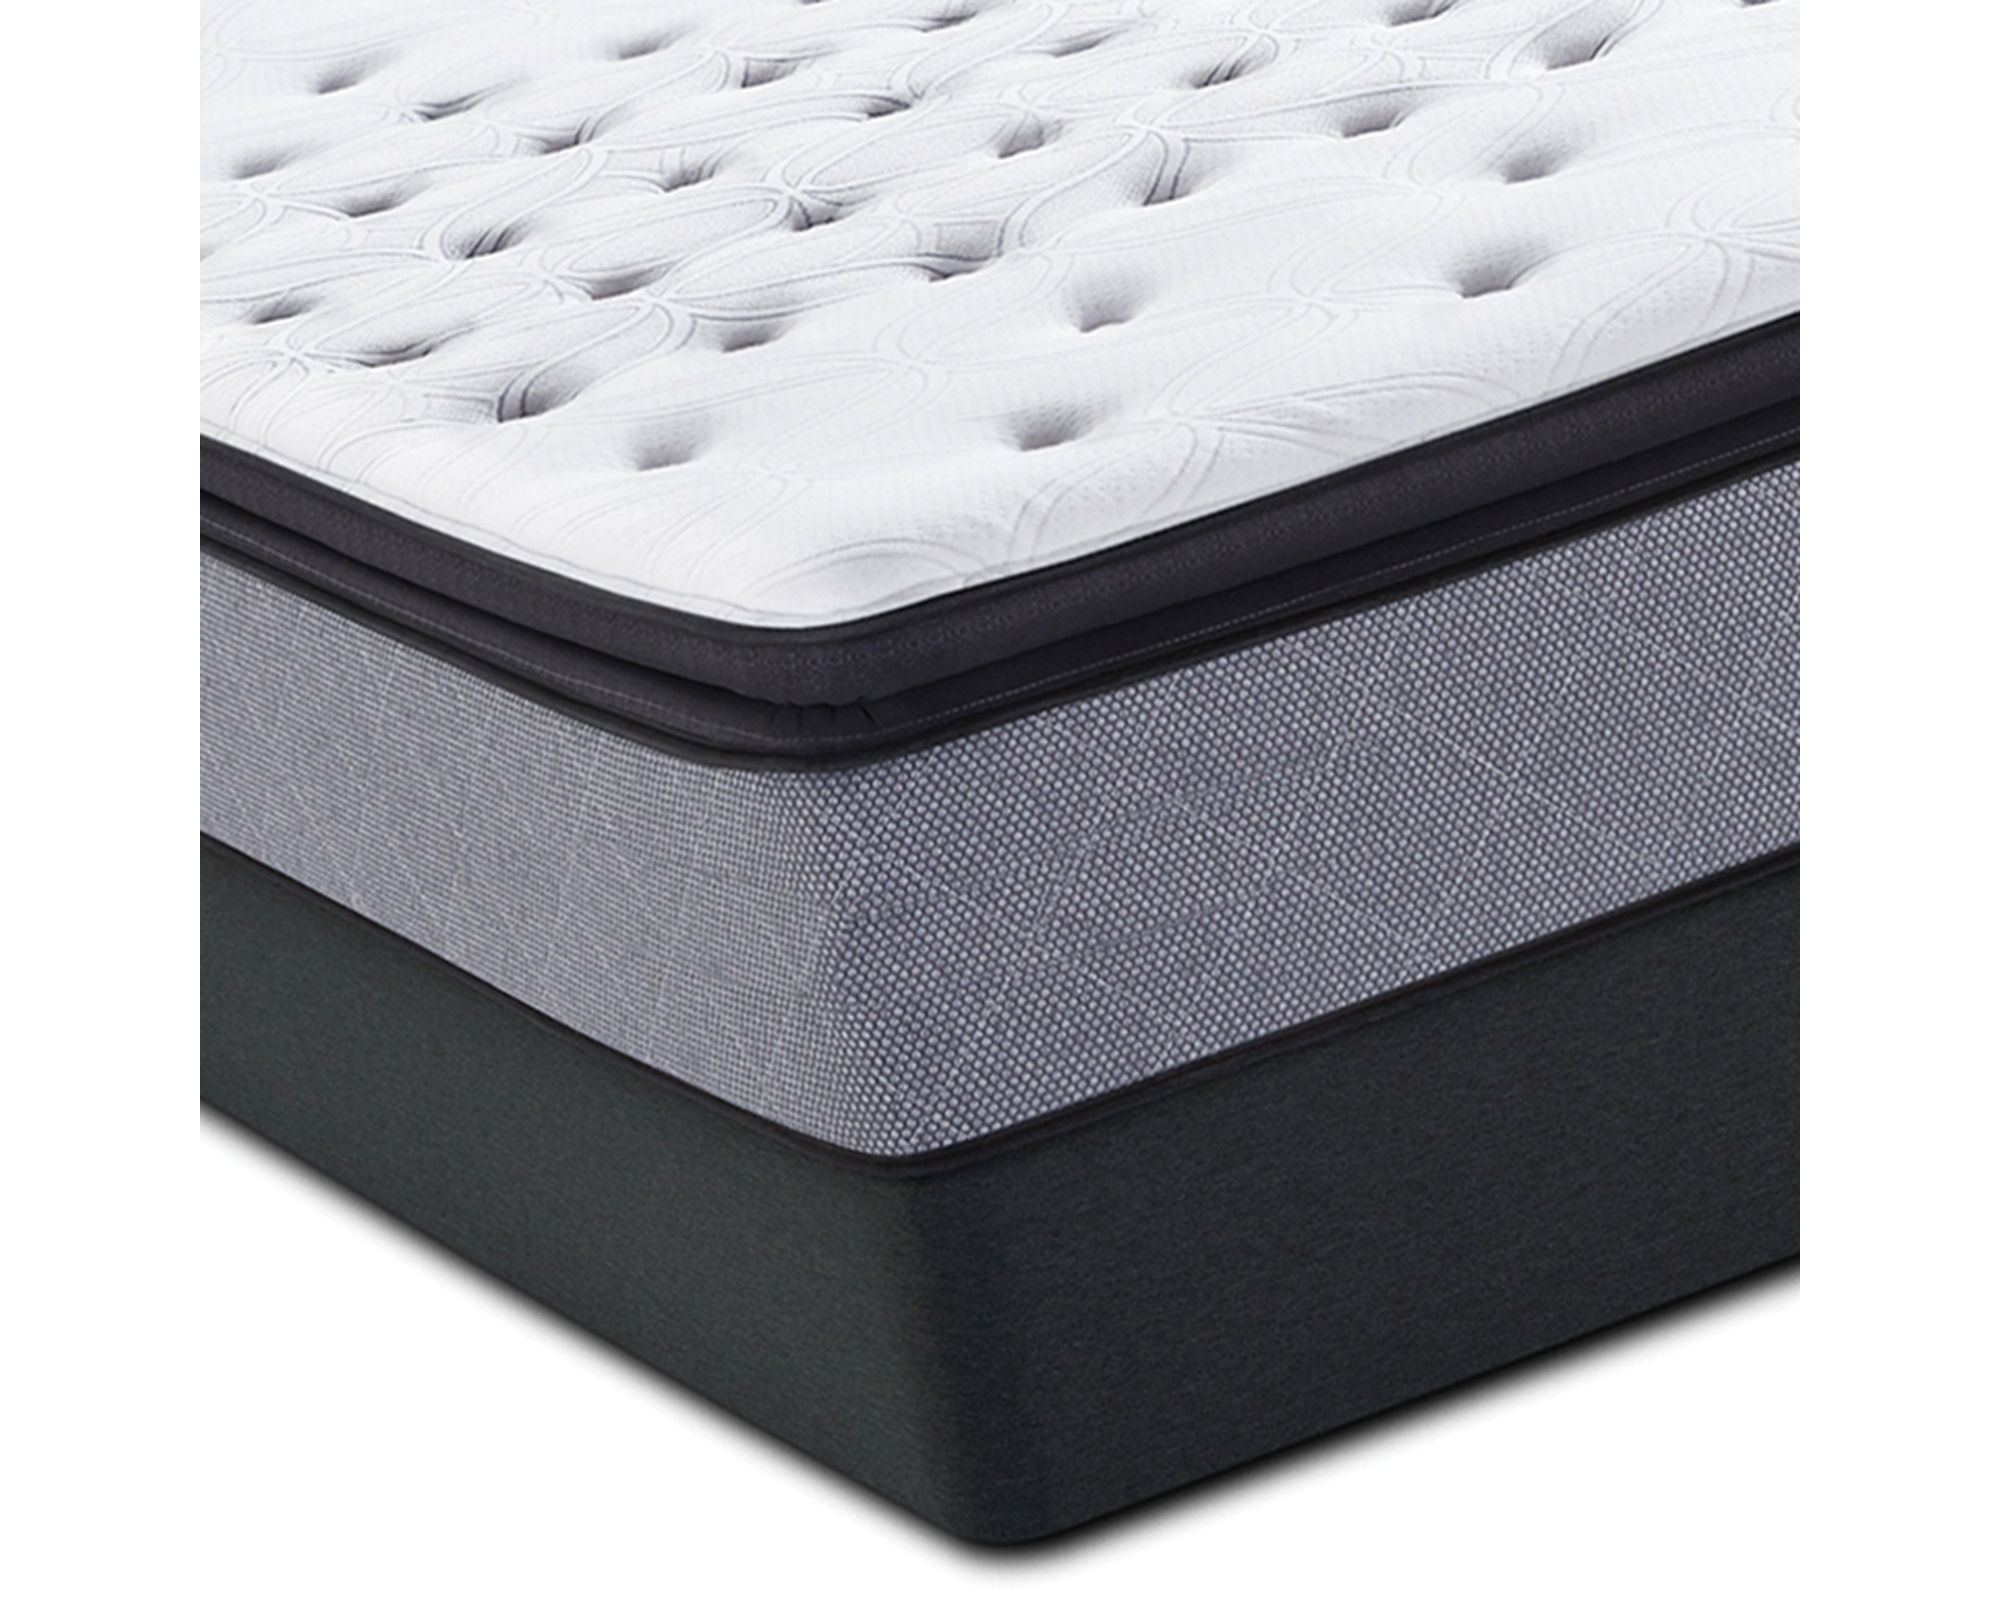 Sealy Posturepedic Iguaza Falls Firm Euro Pillow-Top Mattress & Box Spring